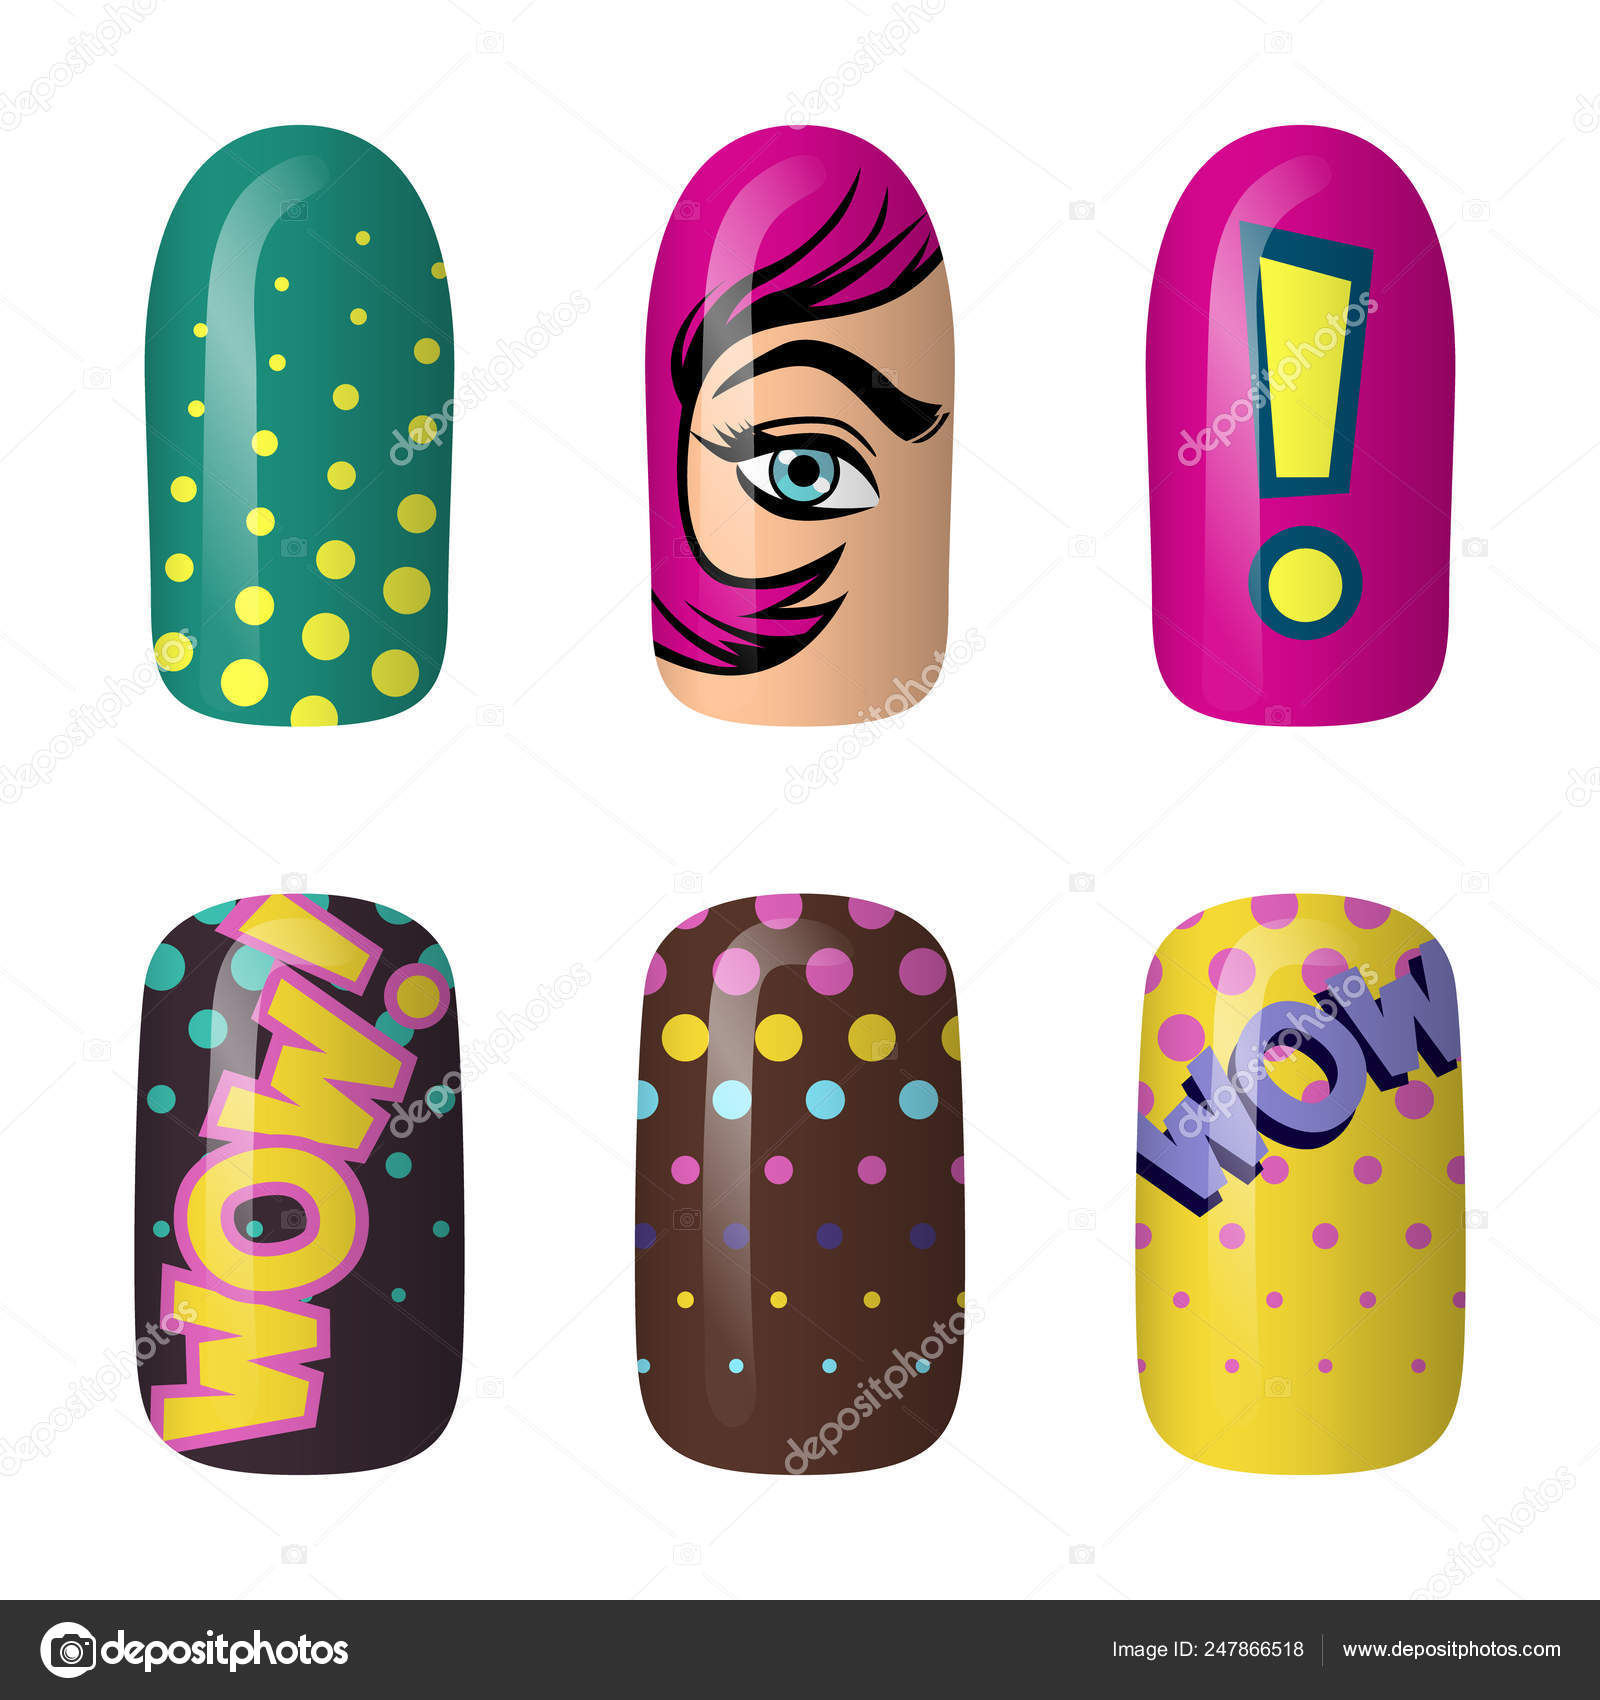 Pop Art Nails Set Of Colored Painted Pop Art Nail Stickers Neon Manicure Art Nail Polish Isolated On A Dark Background Stock Vector C Jkazanceva 247866518